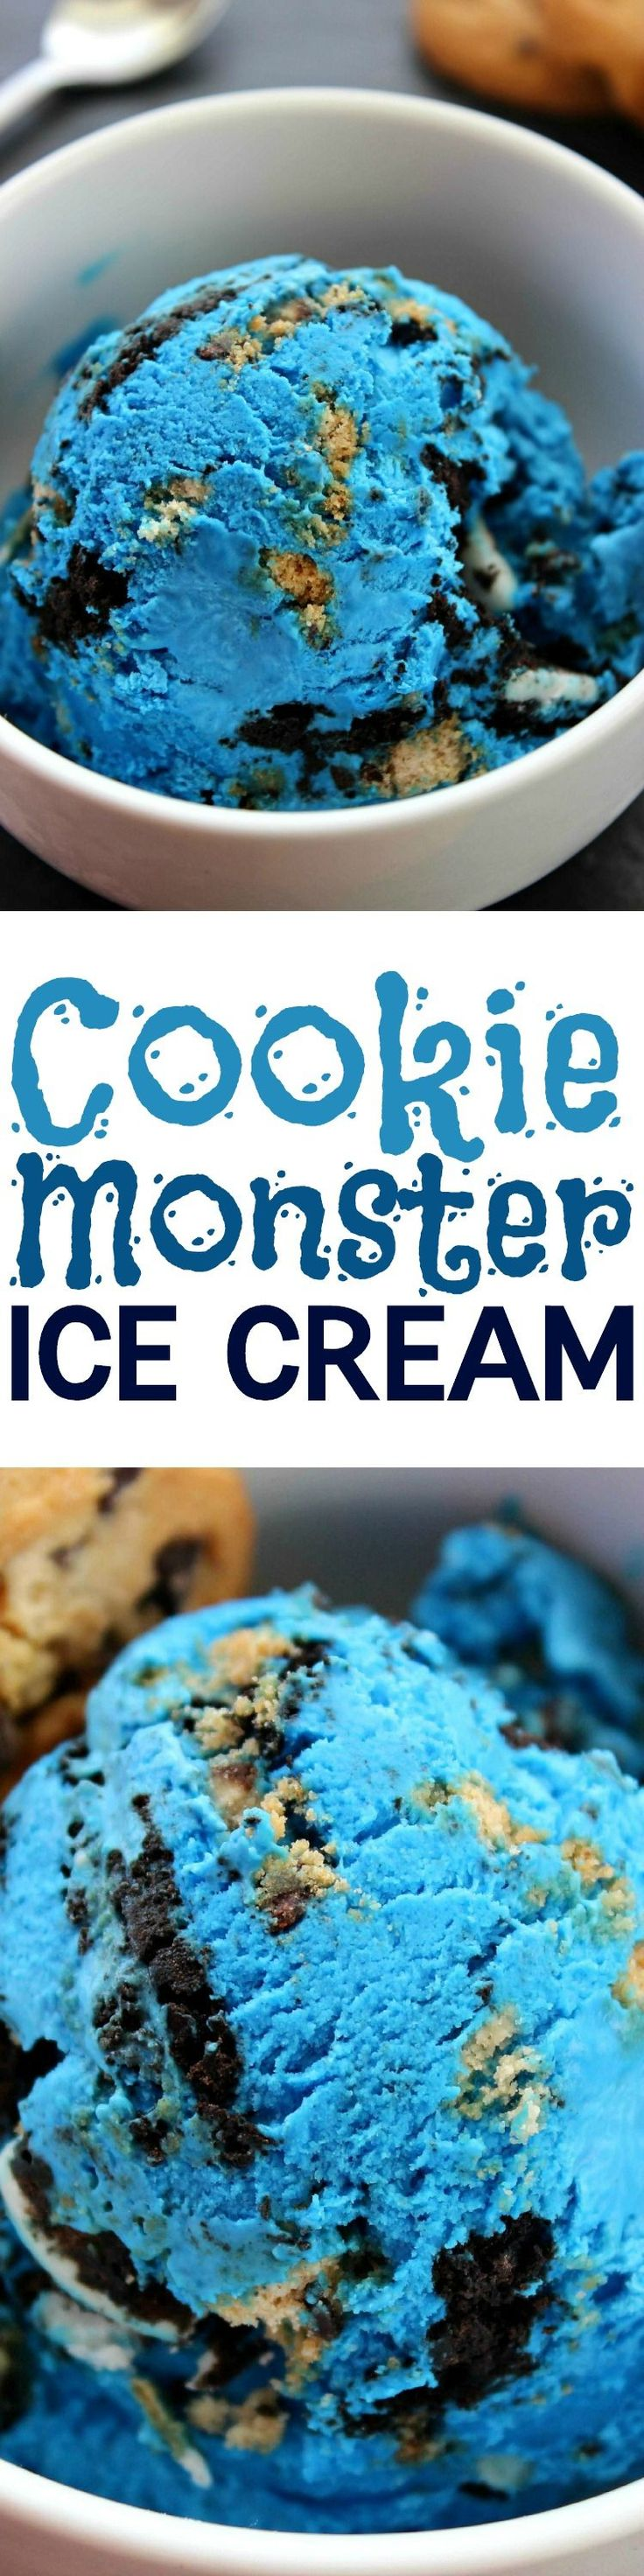 Cookie Monster Ice Cream #Eis #LifeIsSweet #summer #Sommer #Bahlsen